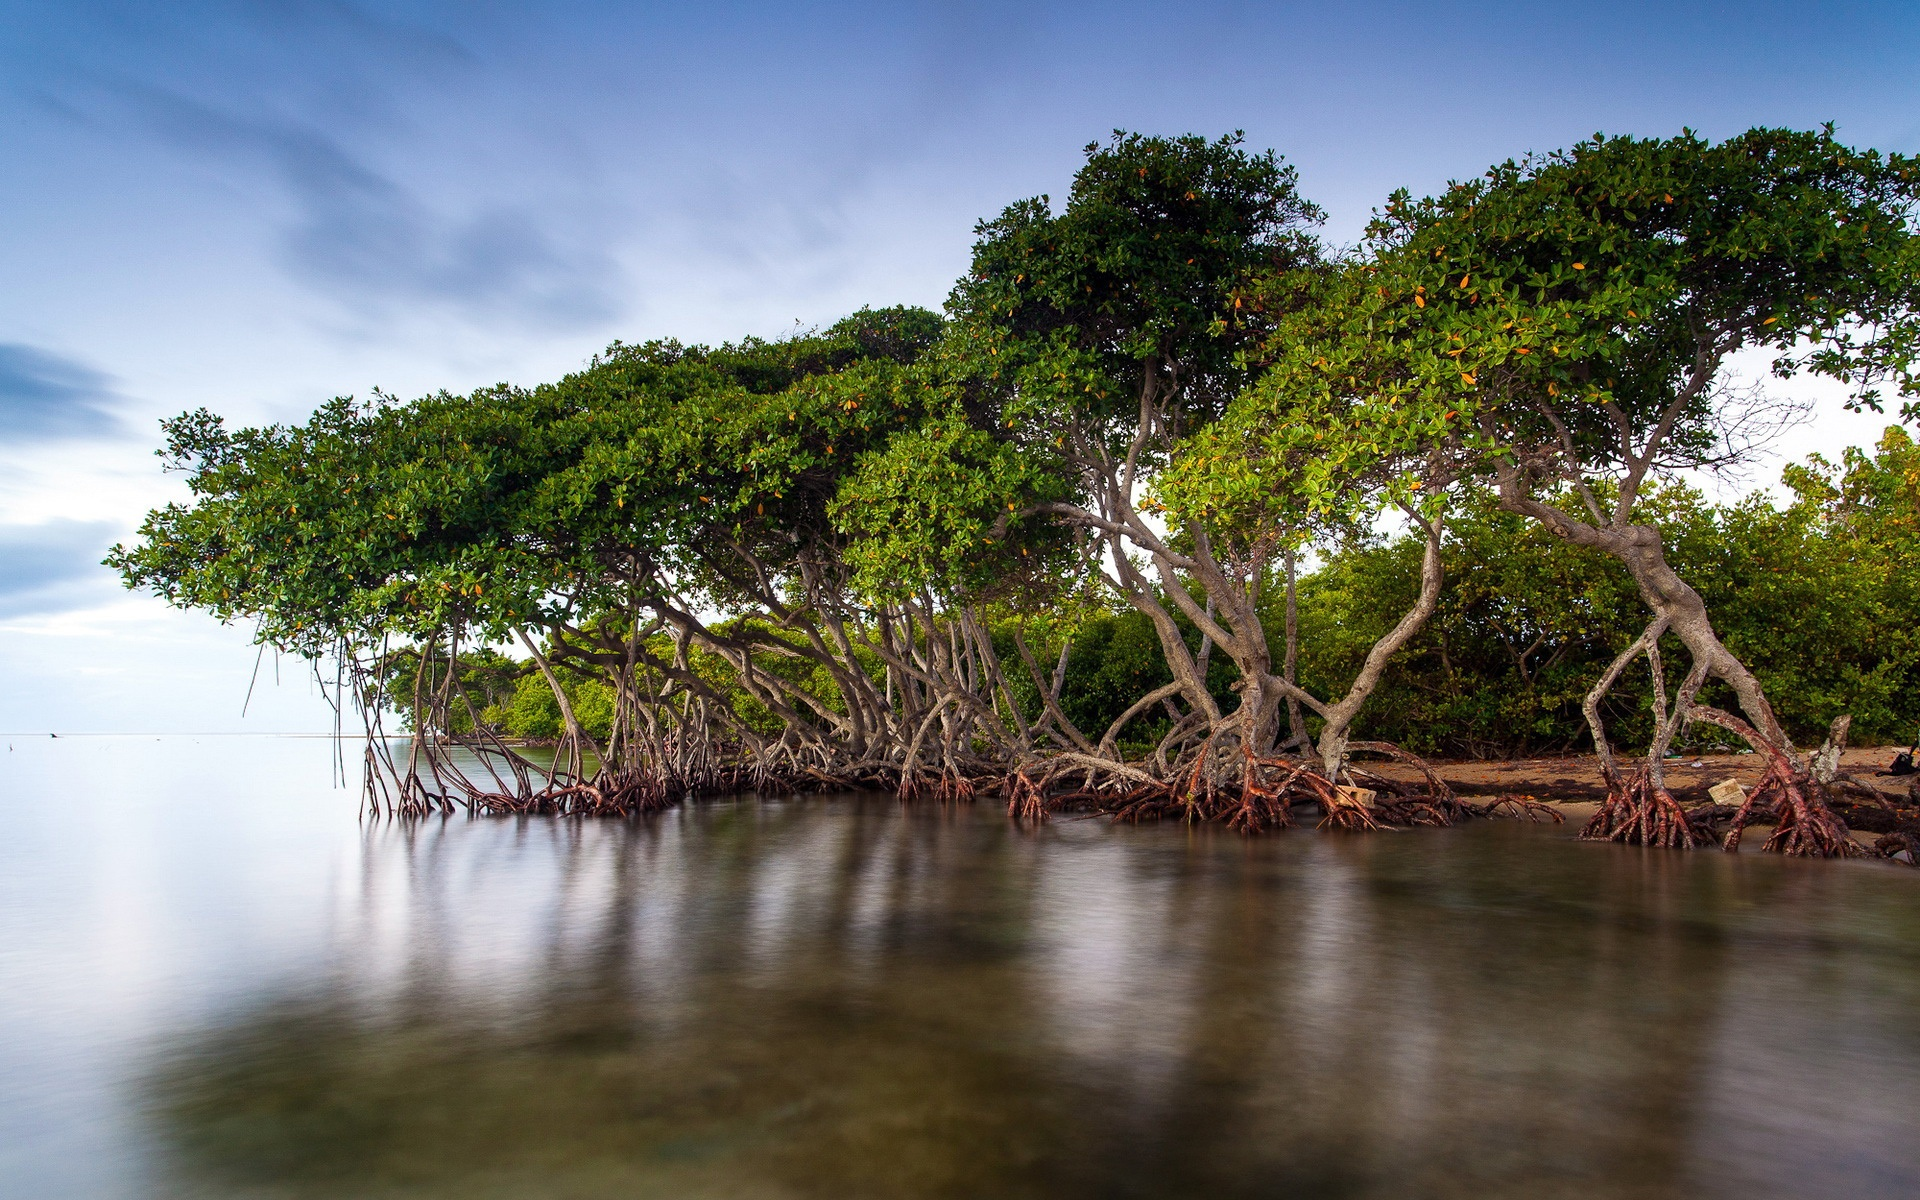 The mangrove forests of the lake scenery 1920x1200 - NCF seeks preservation of Nigeria mangrove forest to stem flooding